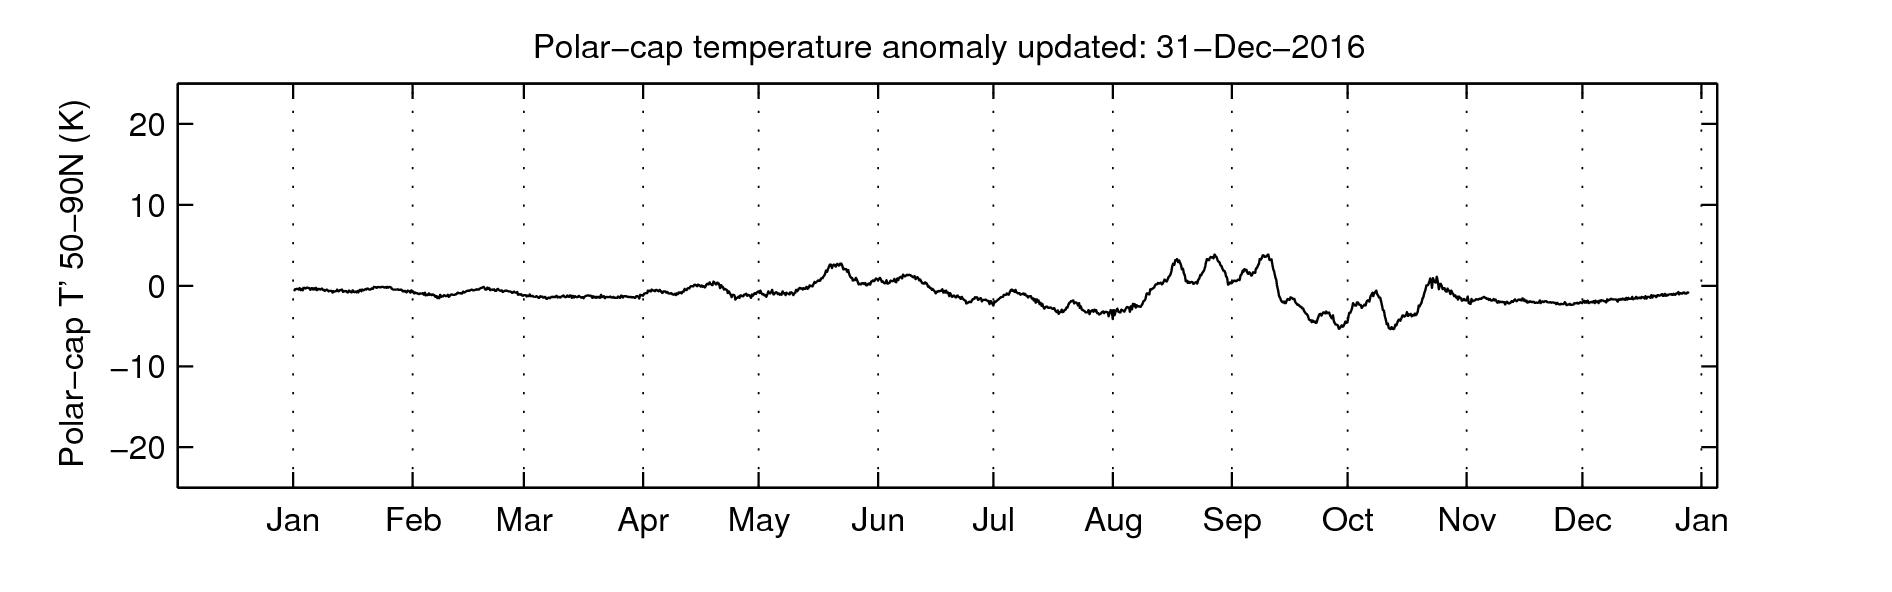 10 hPa polar cap temperature